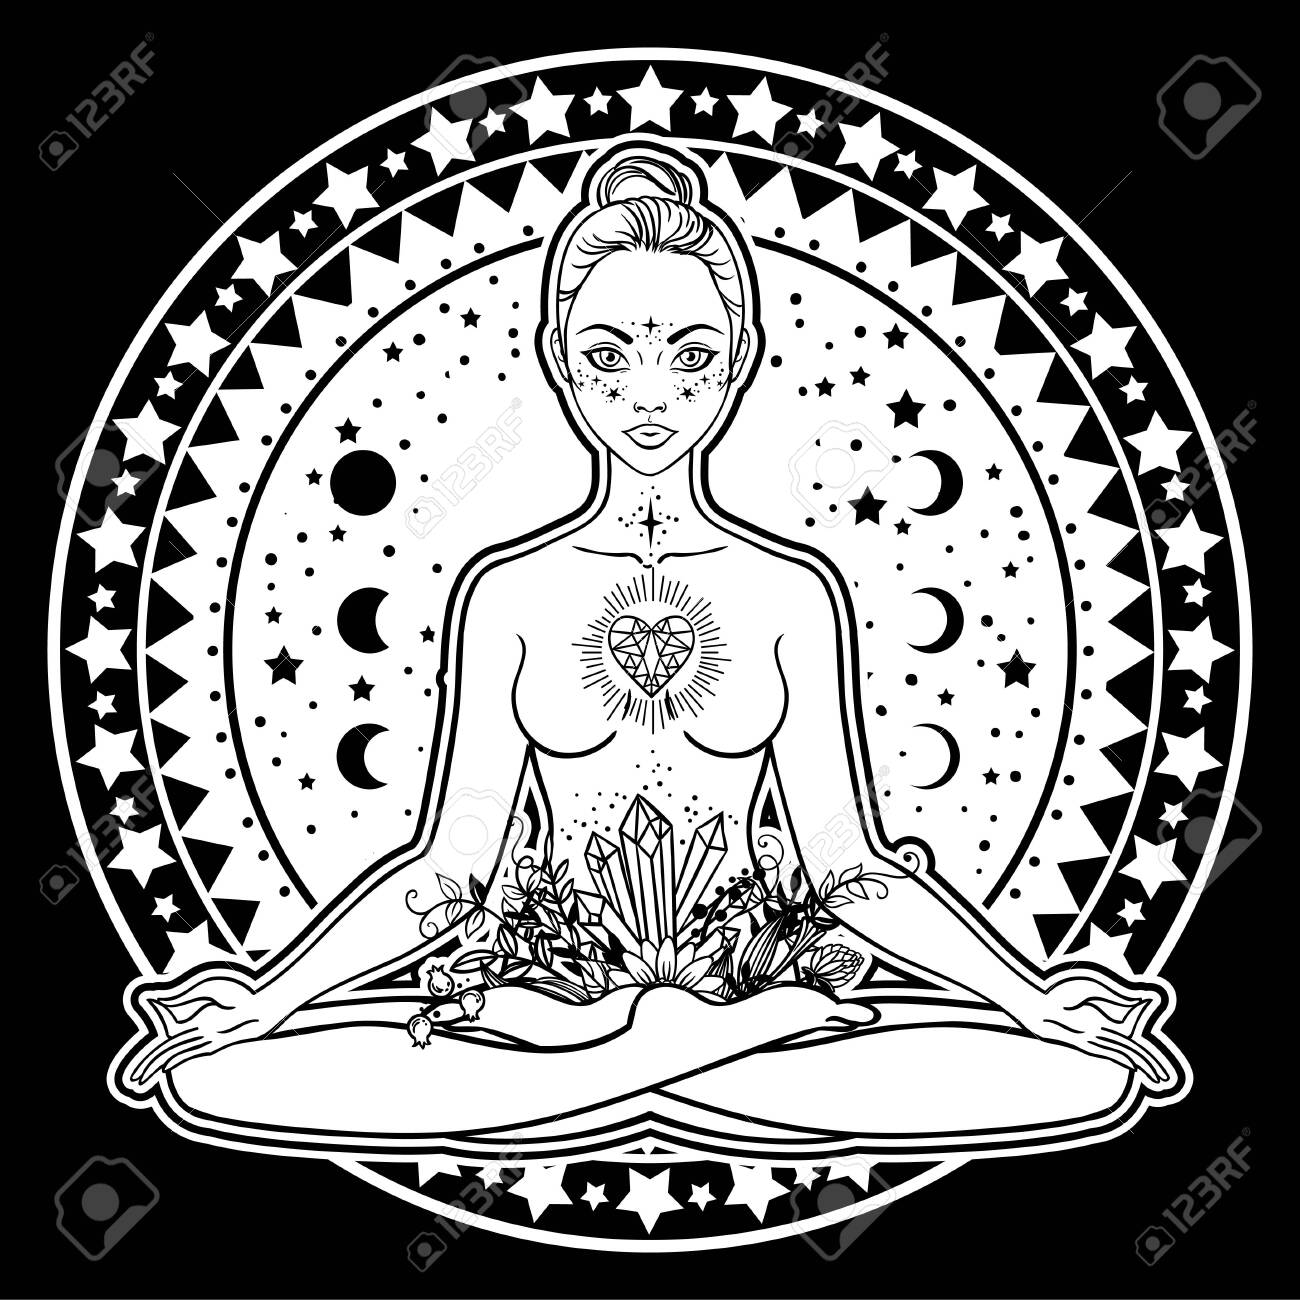 Beautiful Woman Silhouette Sitting In Lotus Pose With Flowers Royalty Free Cliparts Vectors And Stock Illustration Image 134666894